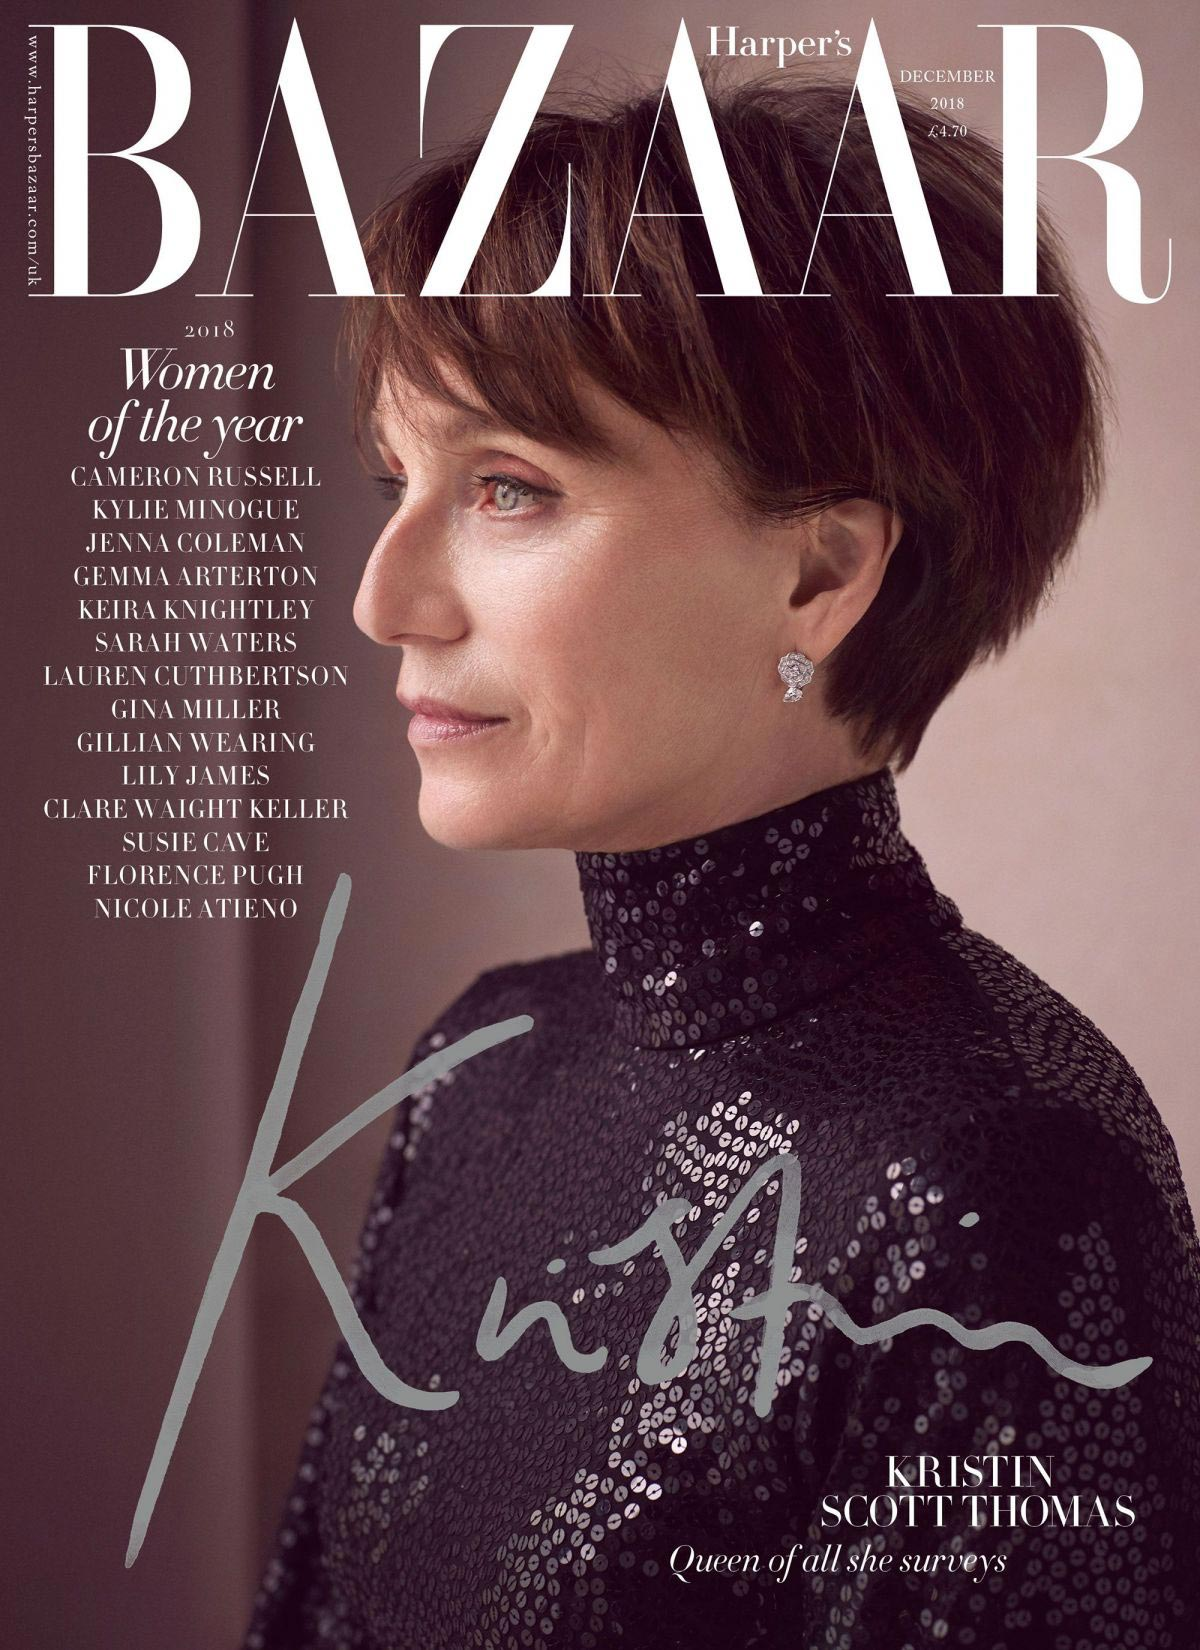 Kristin Scott Thomas in Harper's Bazaar Magazine, UK December 2018 1